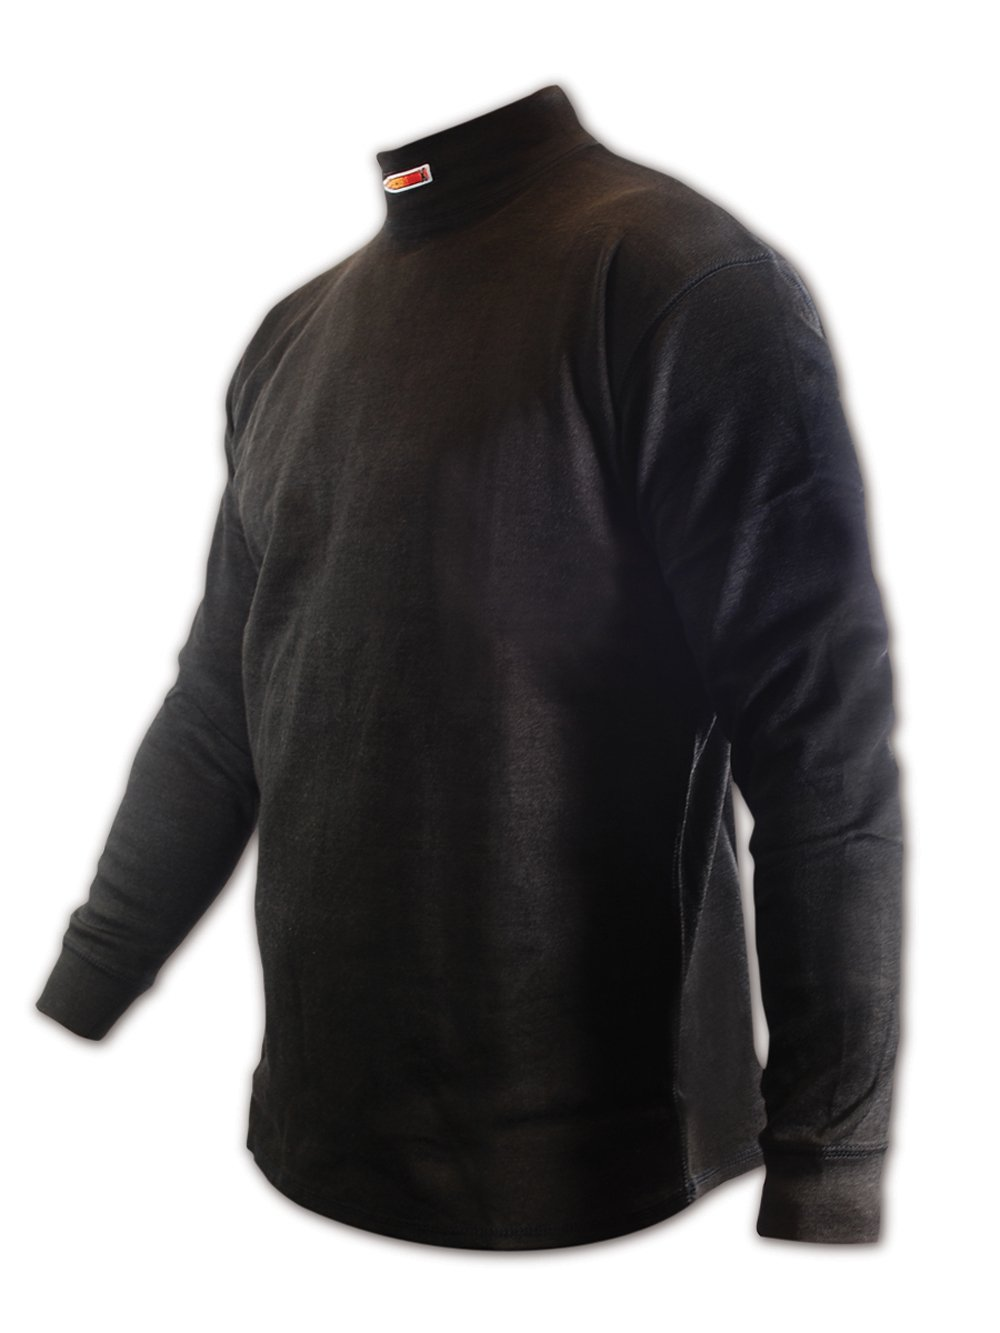 Magid CX54XXXL CarbonX Flame Resistant Long-Sleeved Crew Neck Undershirt, 3XL, Black by Magid Glove & Safety (Image #1)